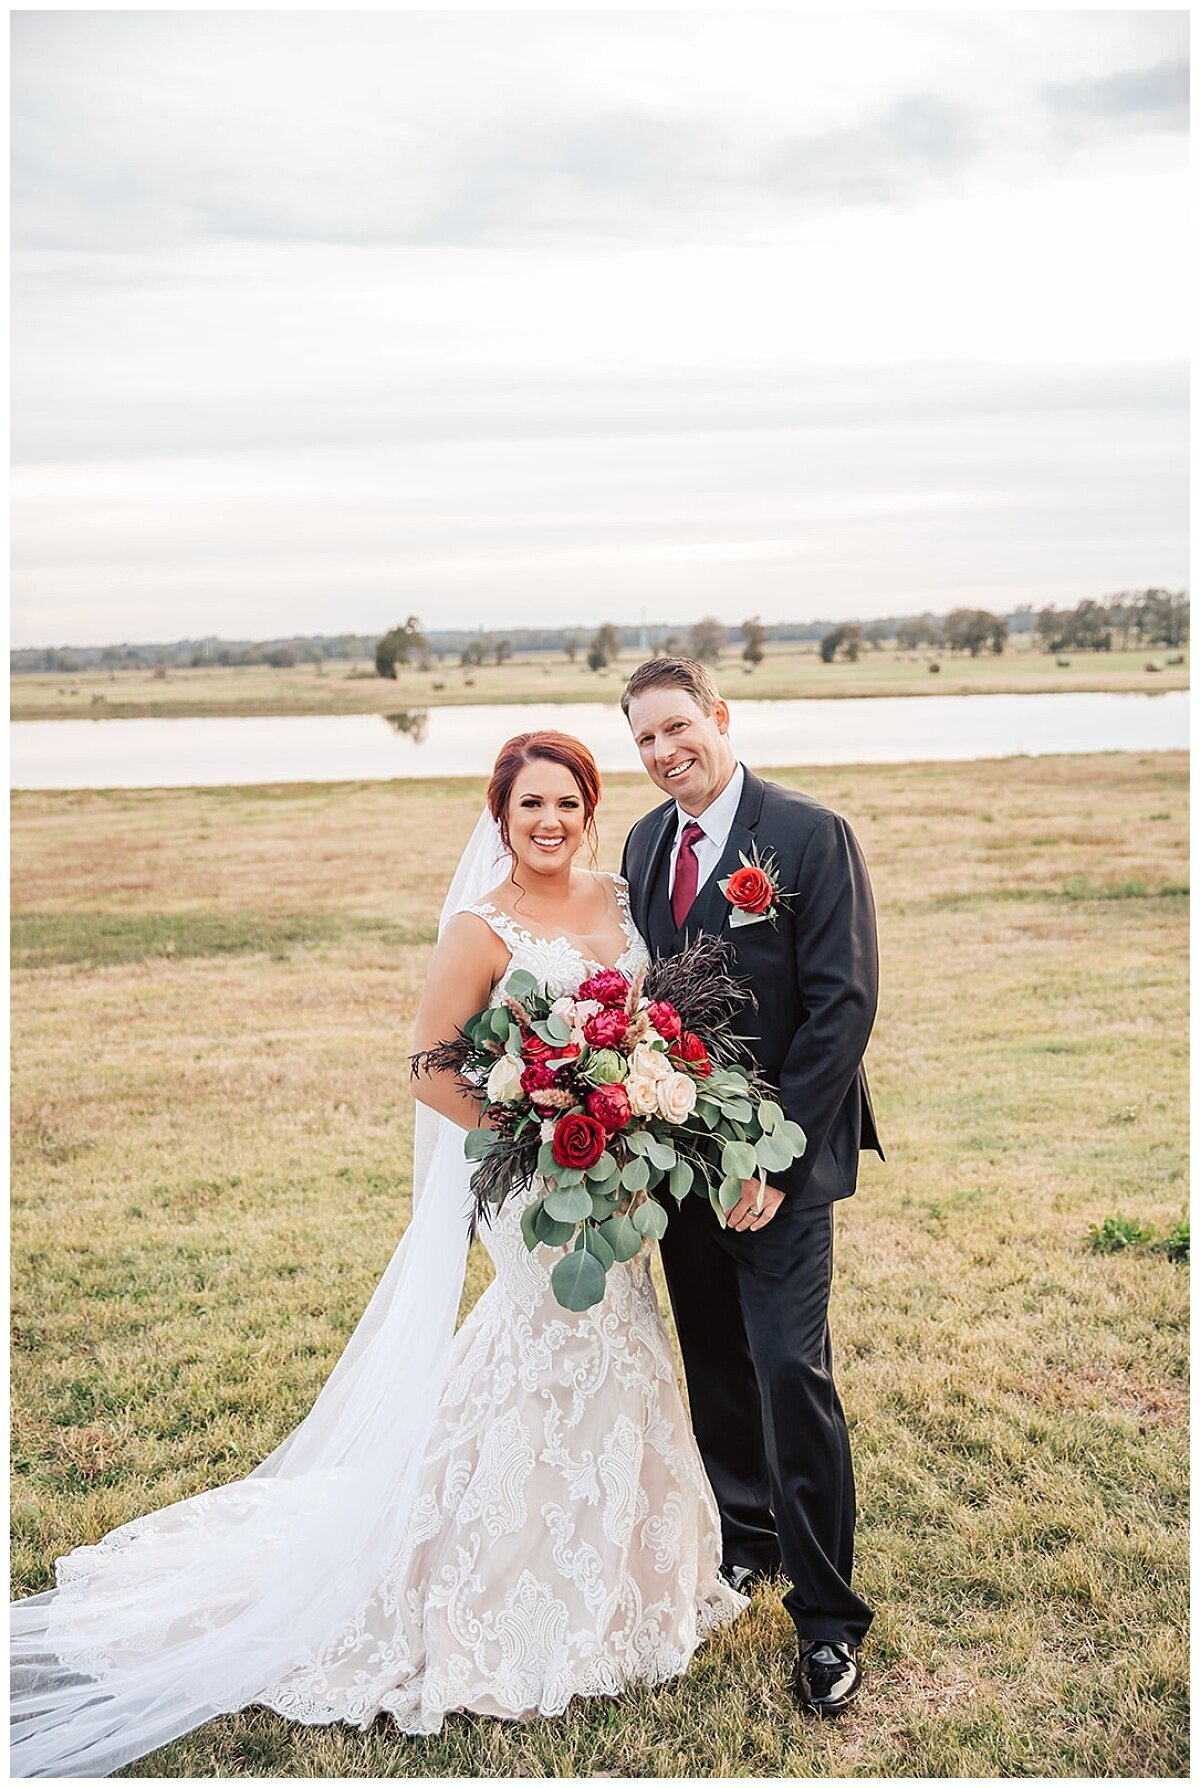 Houston Wedding Planner for Glam Boho Inspired Wedding- Bride and Groom Photos at Emery's Buffalo Creek- J Richter Events_0000